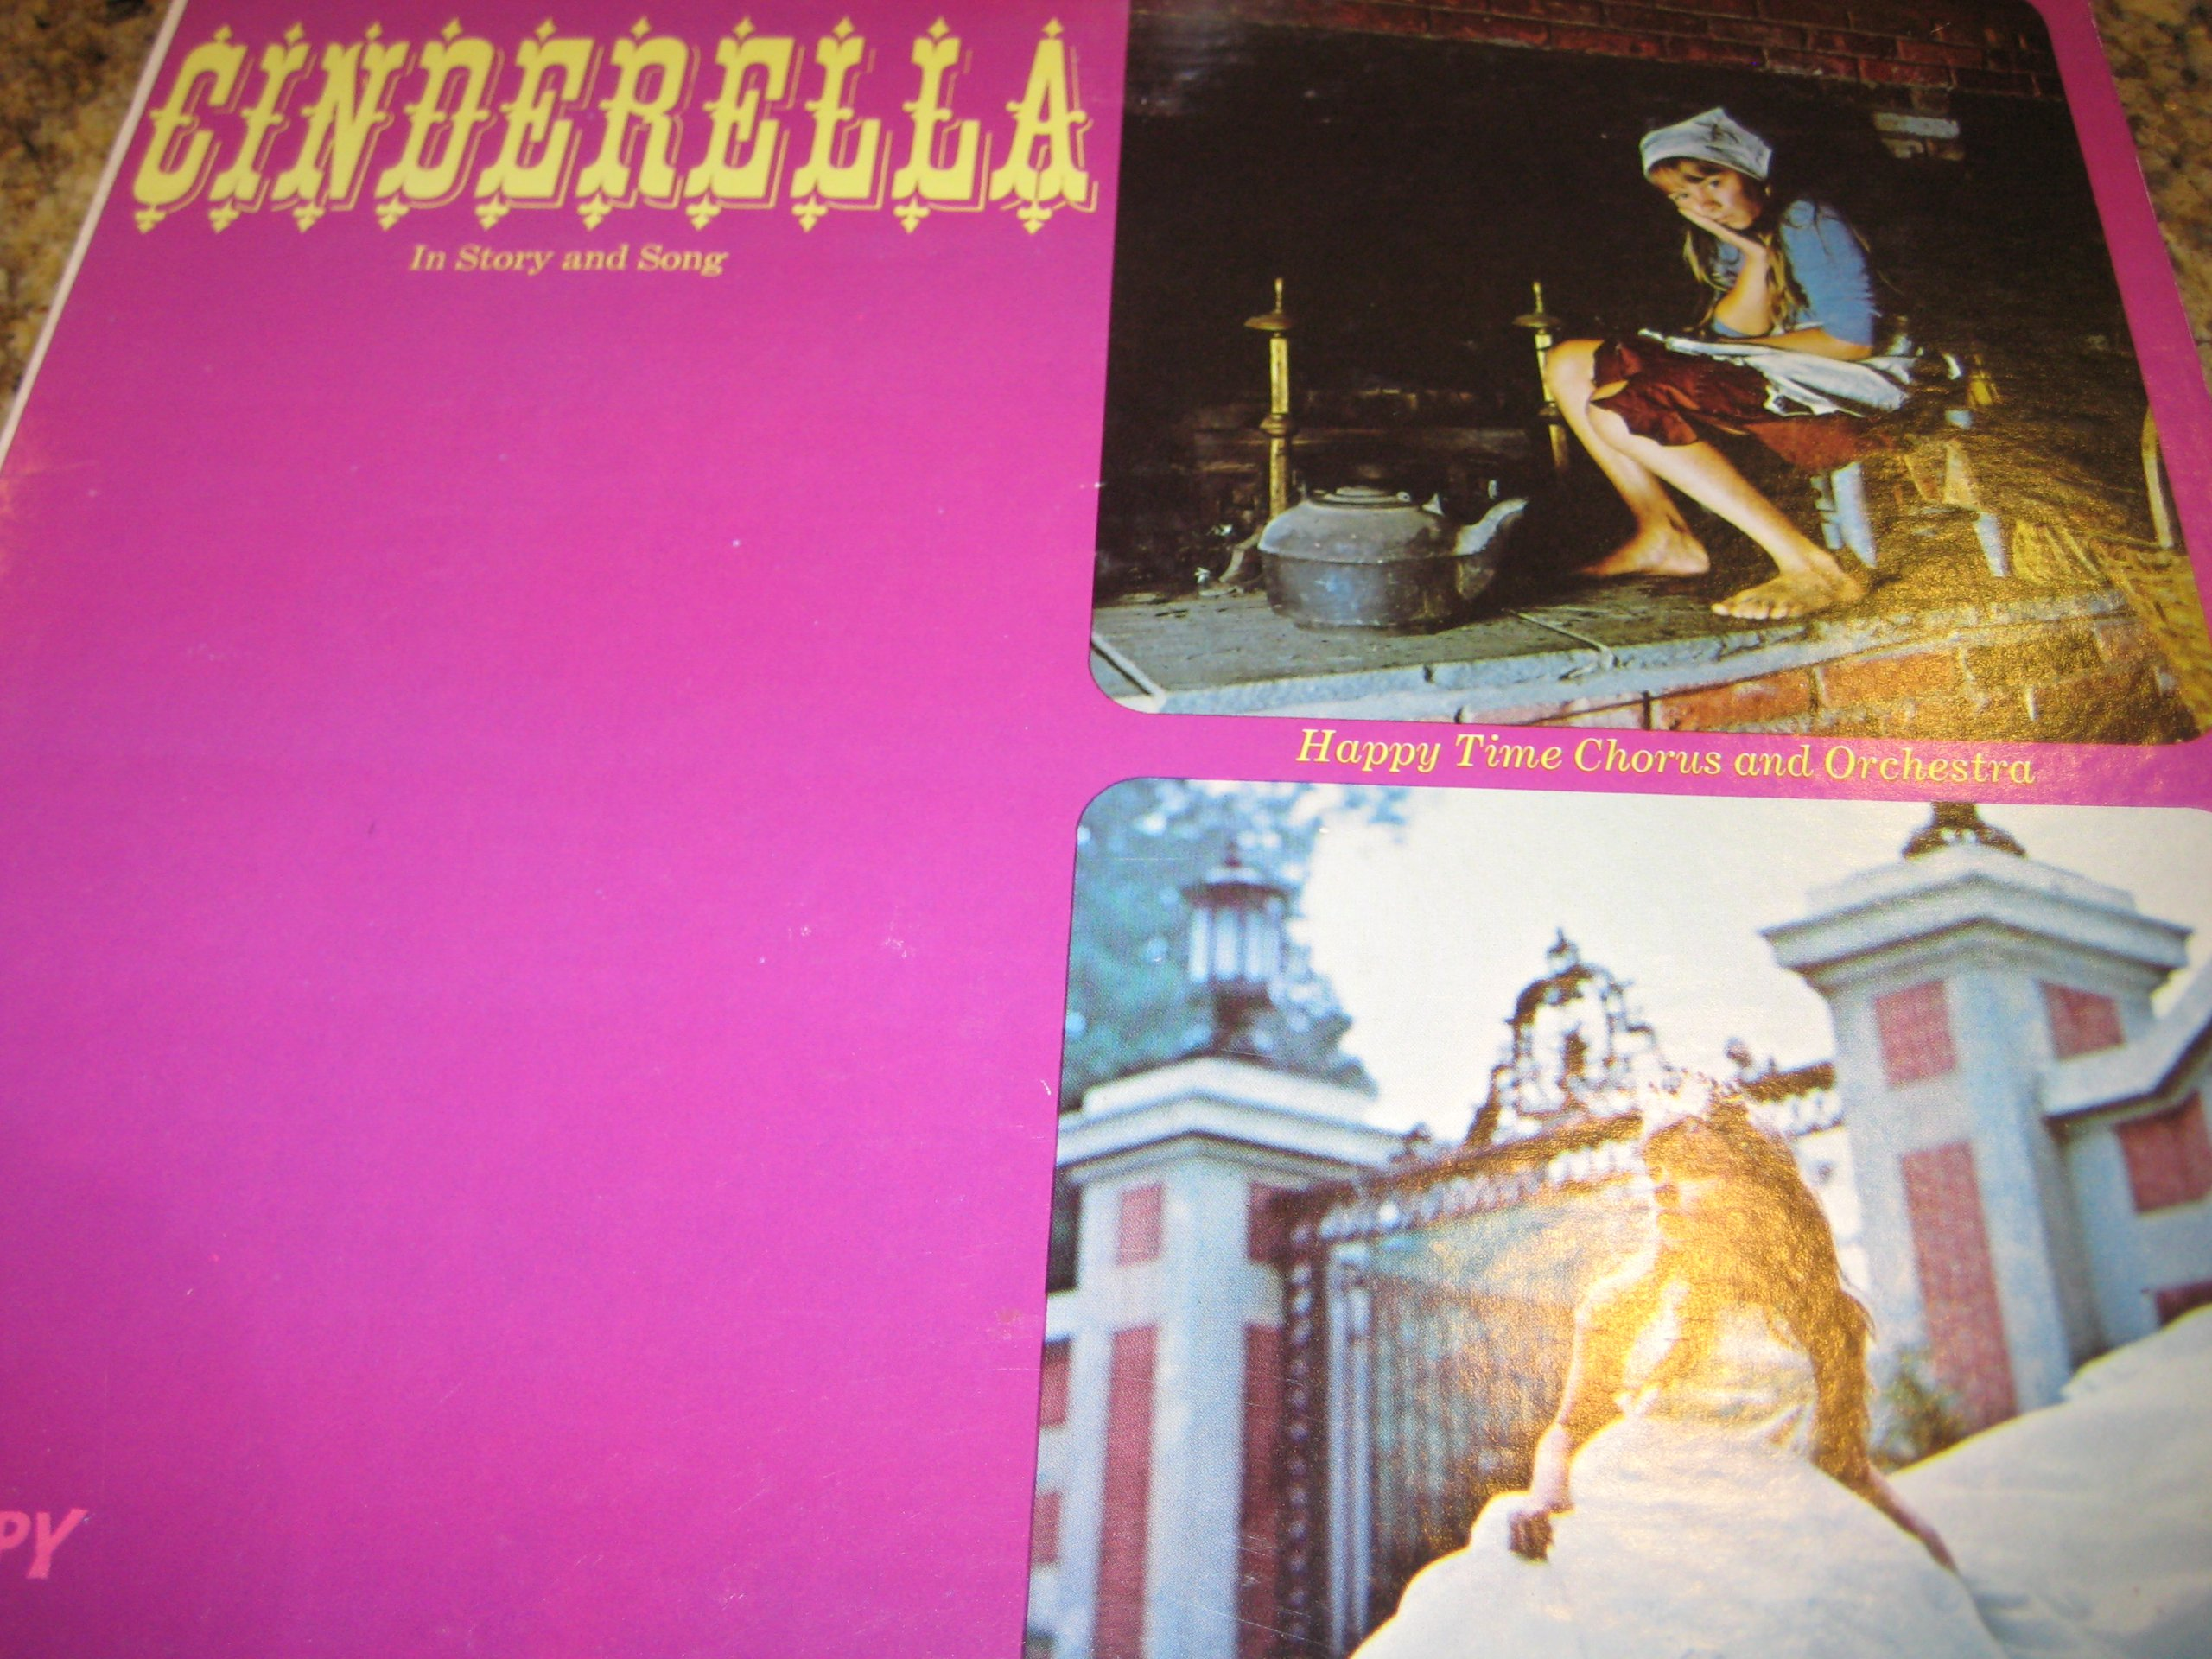 Cinderella in Story and Song [Happy Time Records HT-1053]